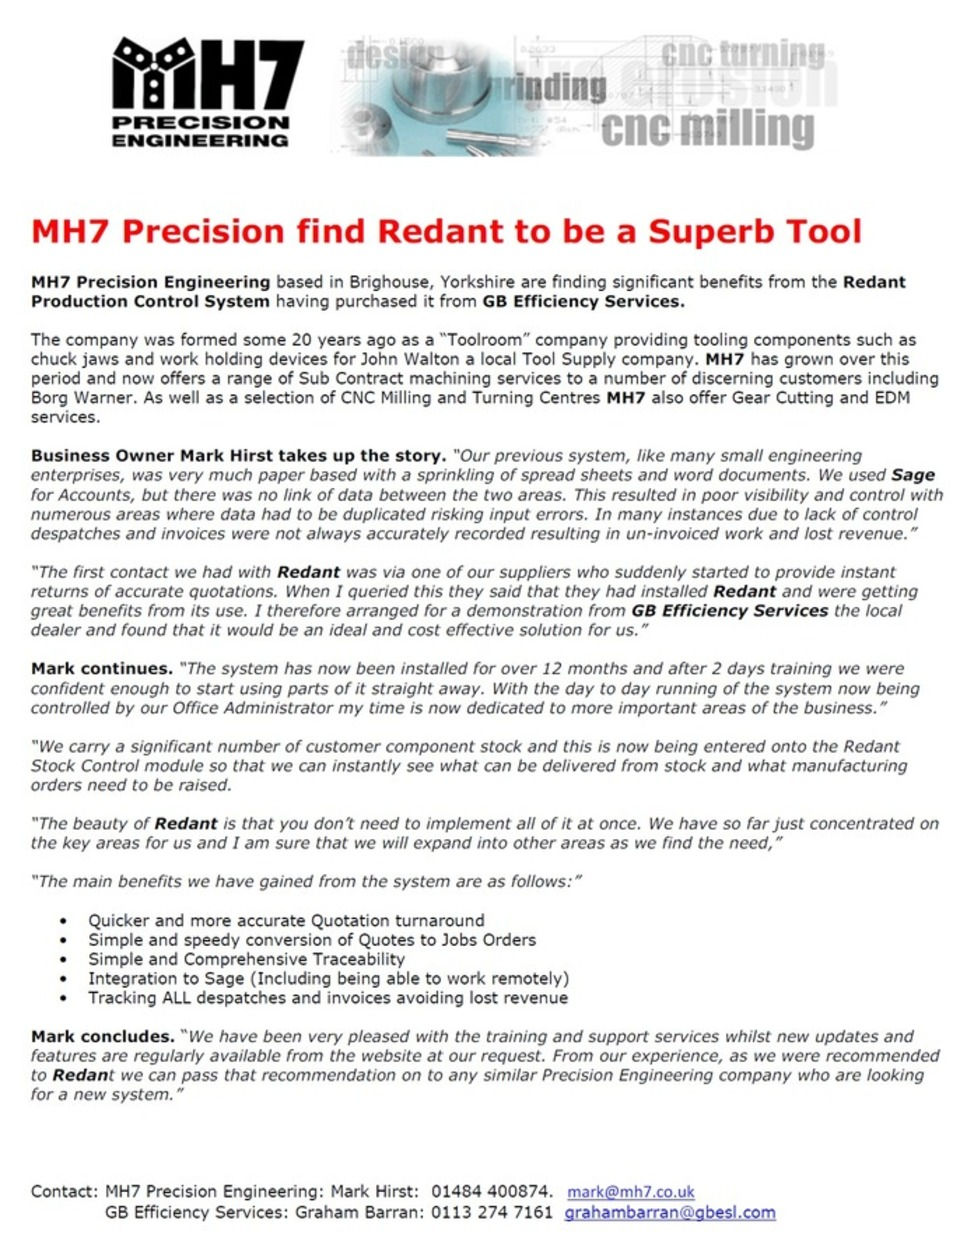 Redant Software in use at MH7 Precision